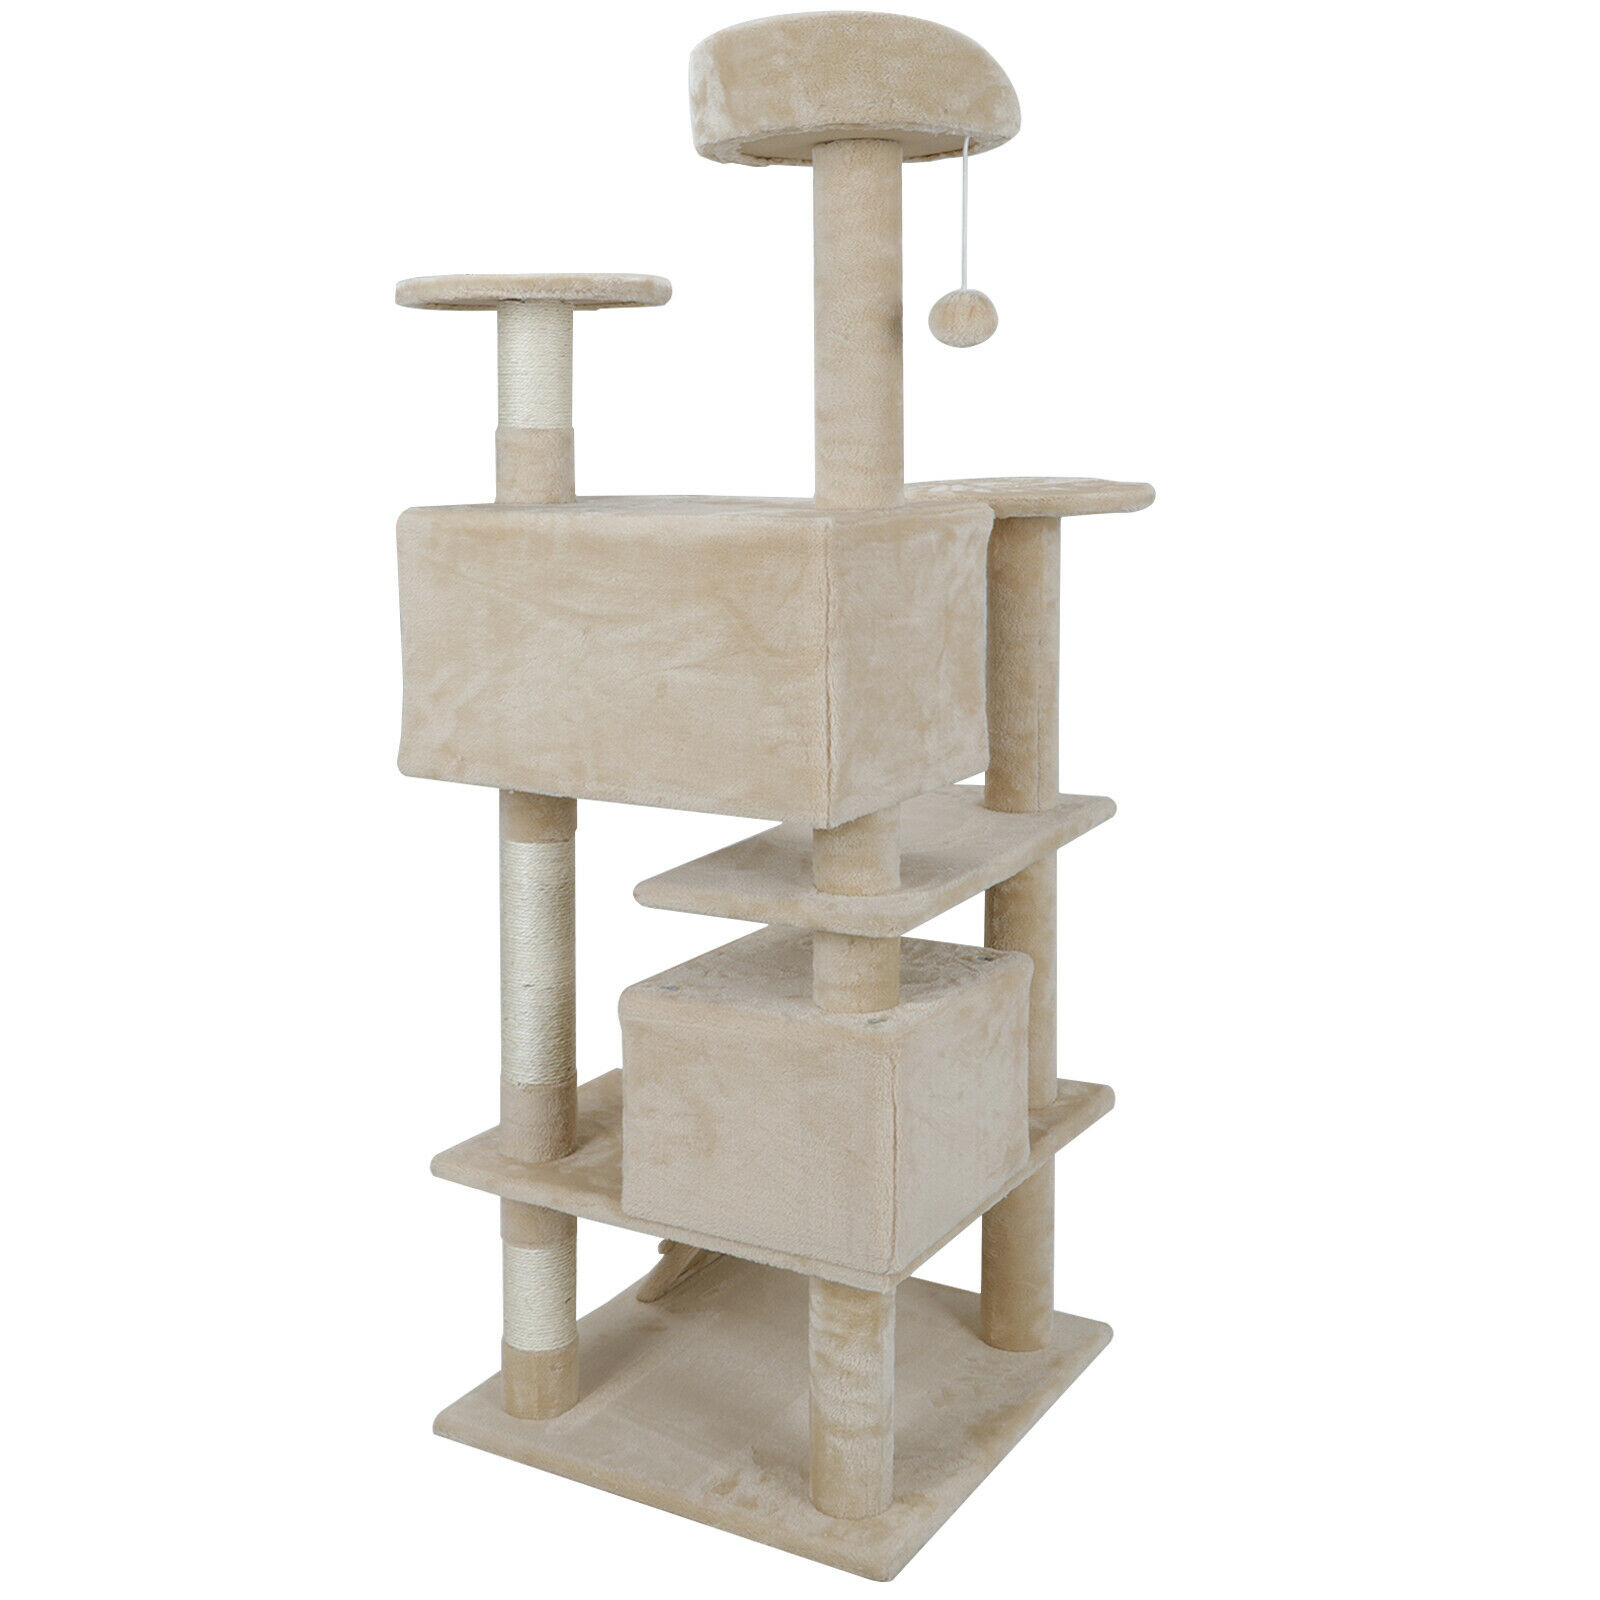 Multi-level 52″ Cat Tree Tower for Multiple Cats W/Sisal Posts, Scratching Board Cat Supplies